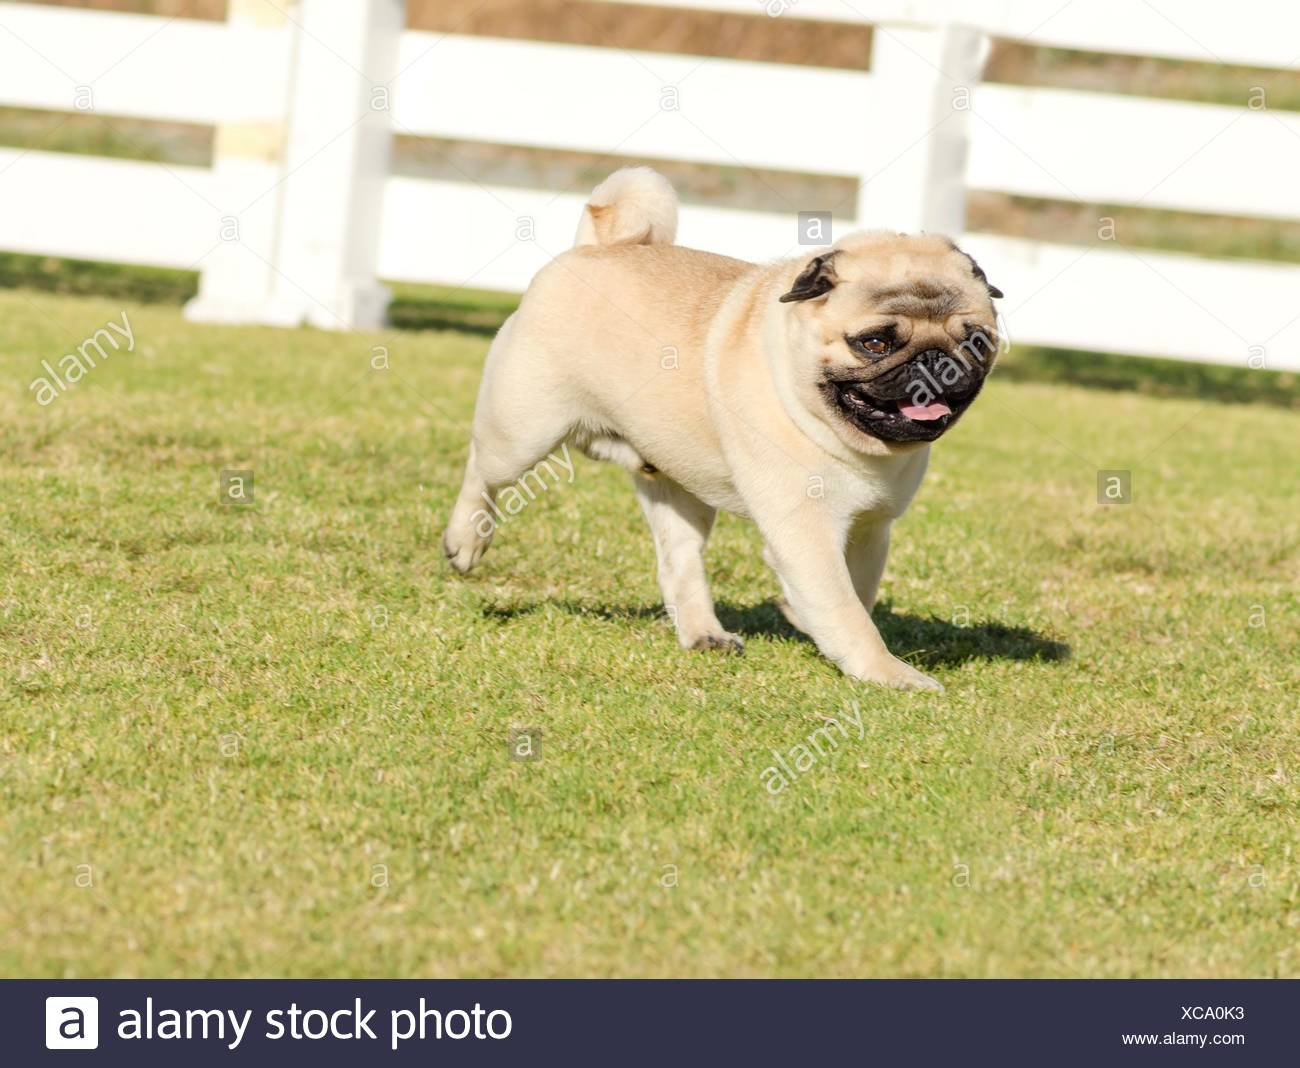 A small, young, beautiful, fawn Pug with a wrinkly short muzzled face running on the lawn looking playful and cheerful. The chinese pug is a happy dog with deep wrinkles, round head and curled tail over the back. - Stock Image